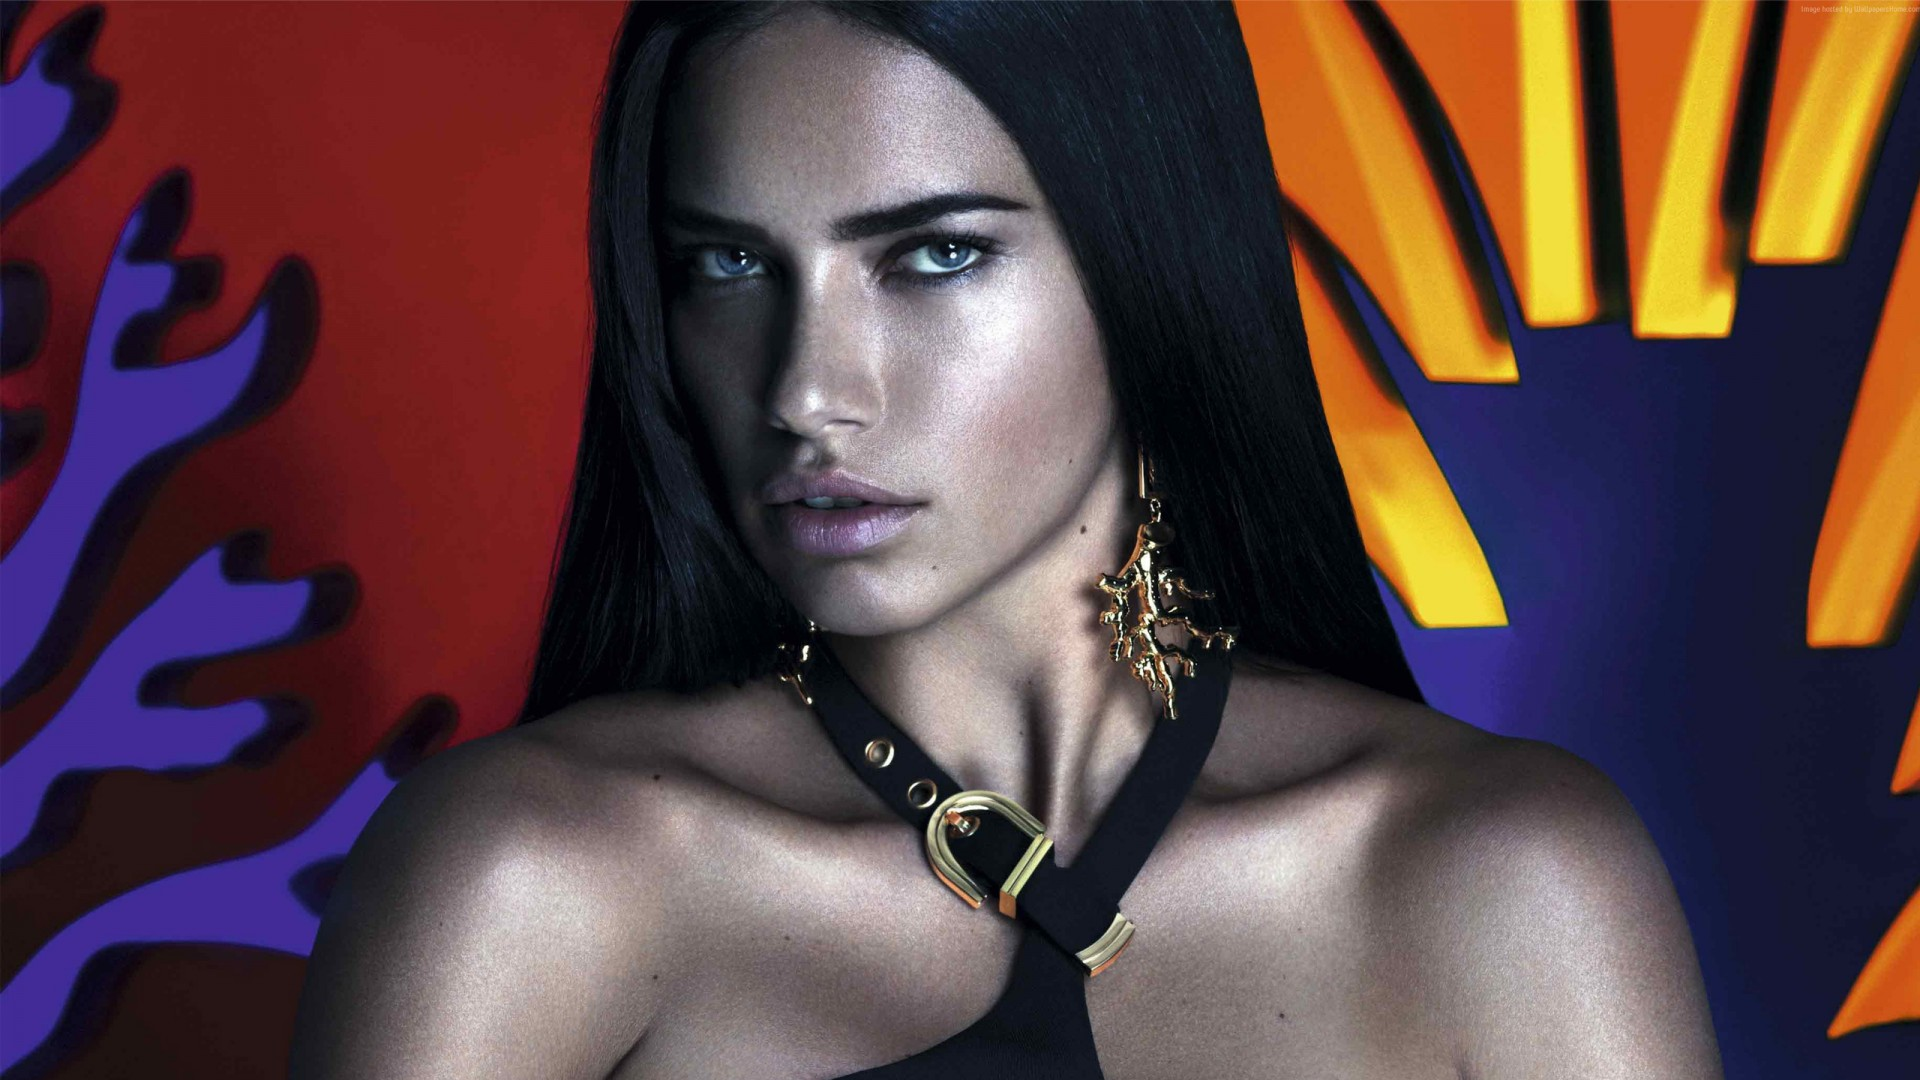 Adriana lima wallpapers 8 voltagebd Images